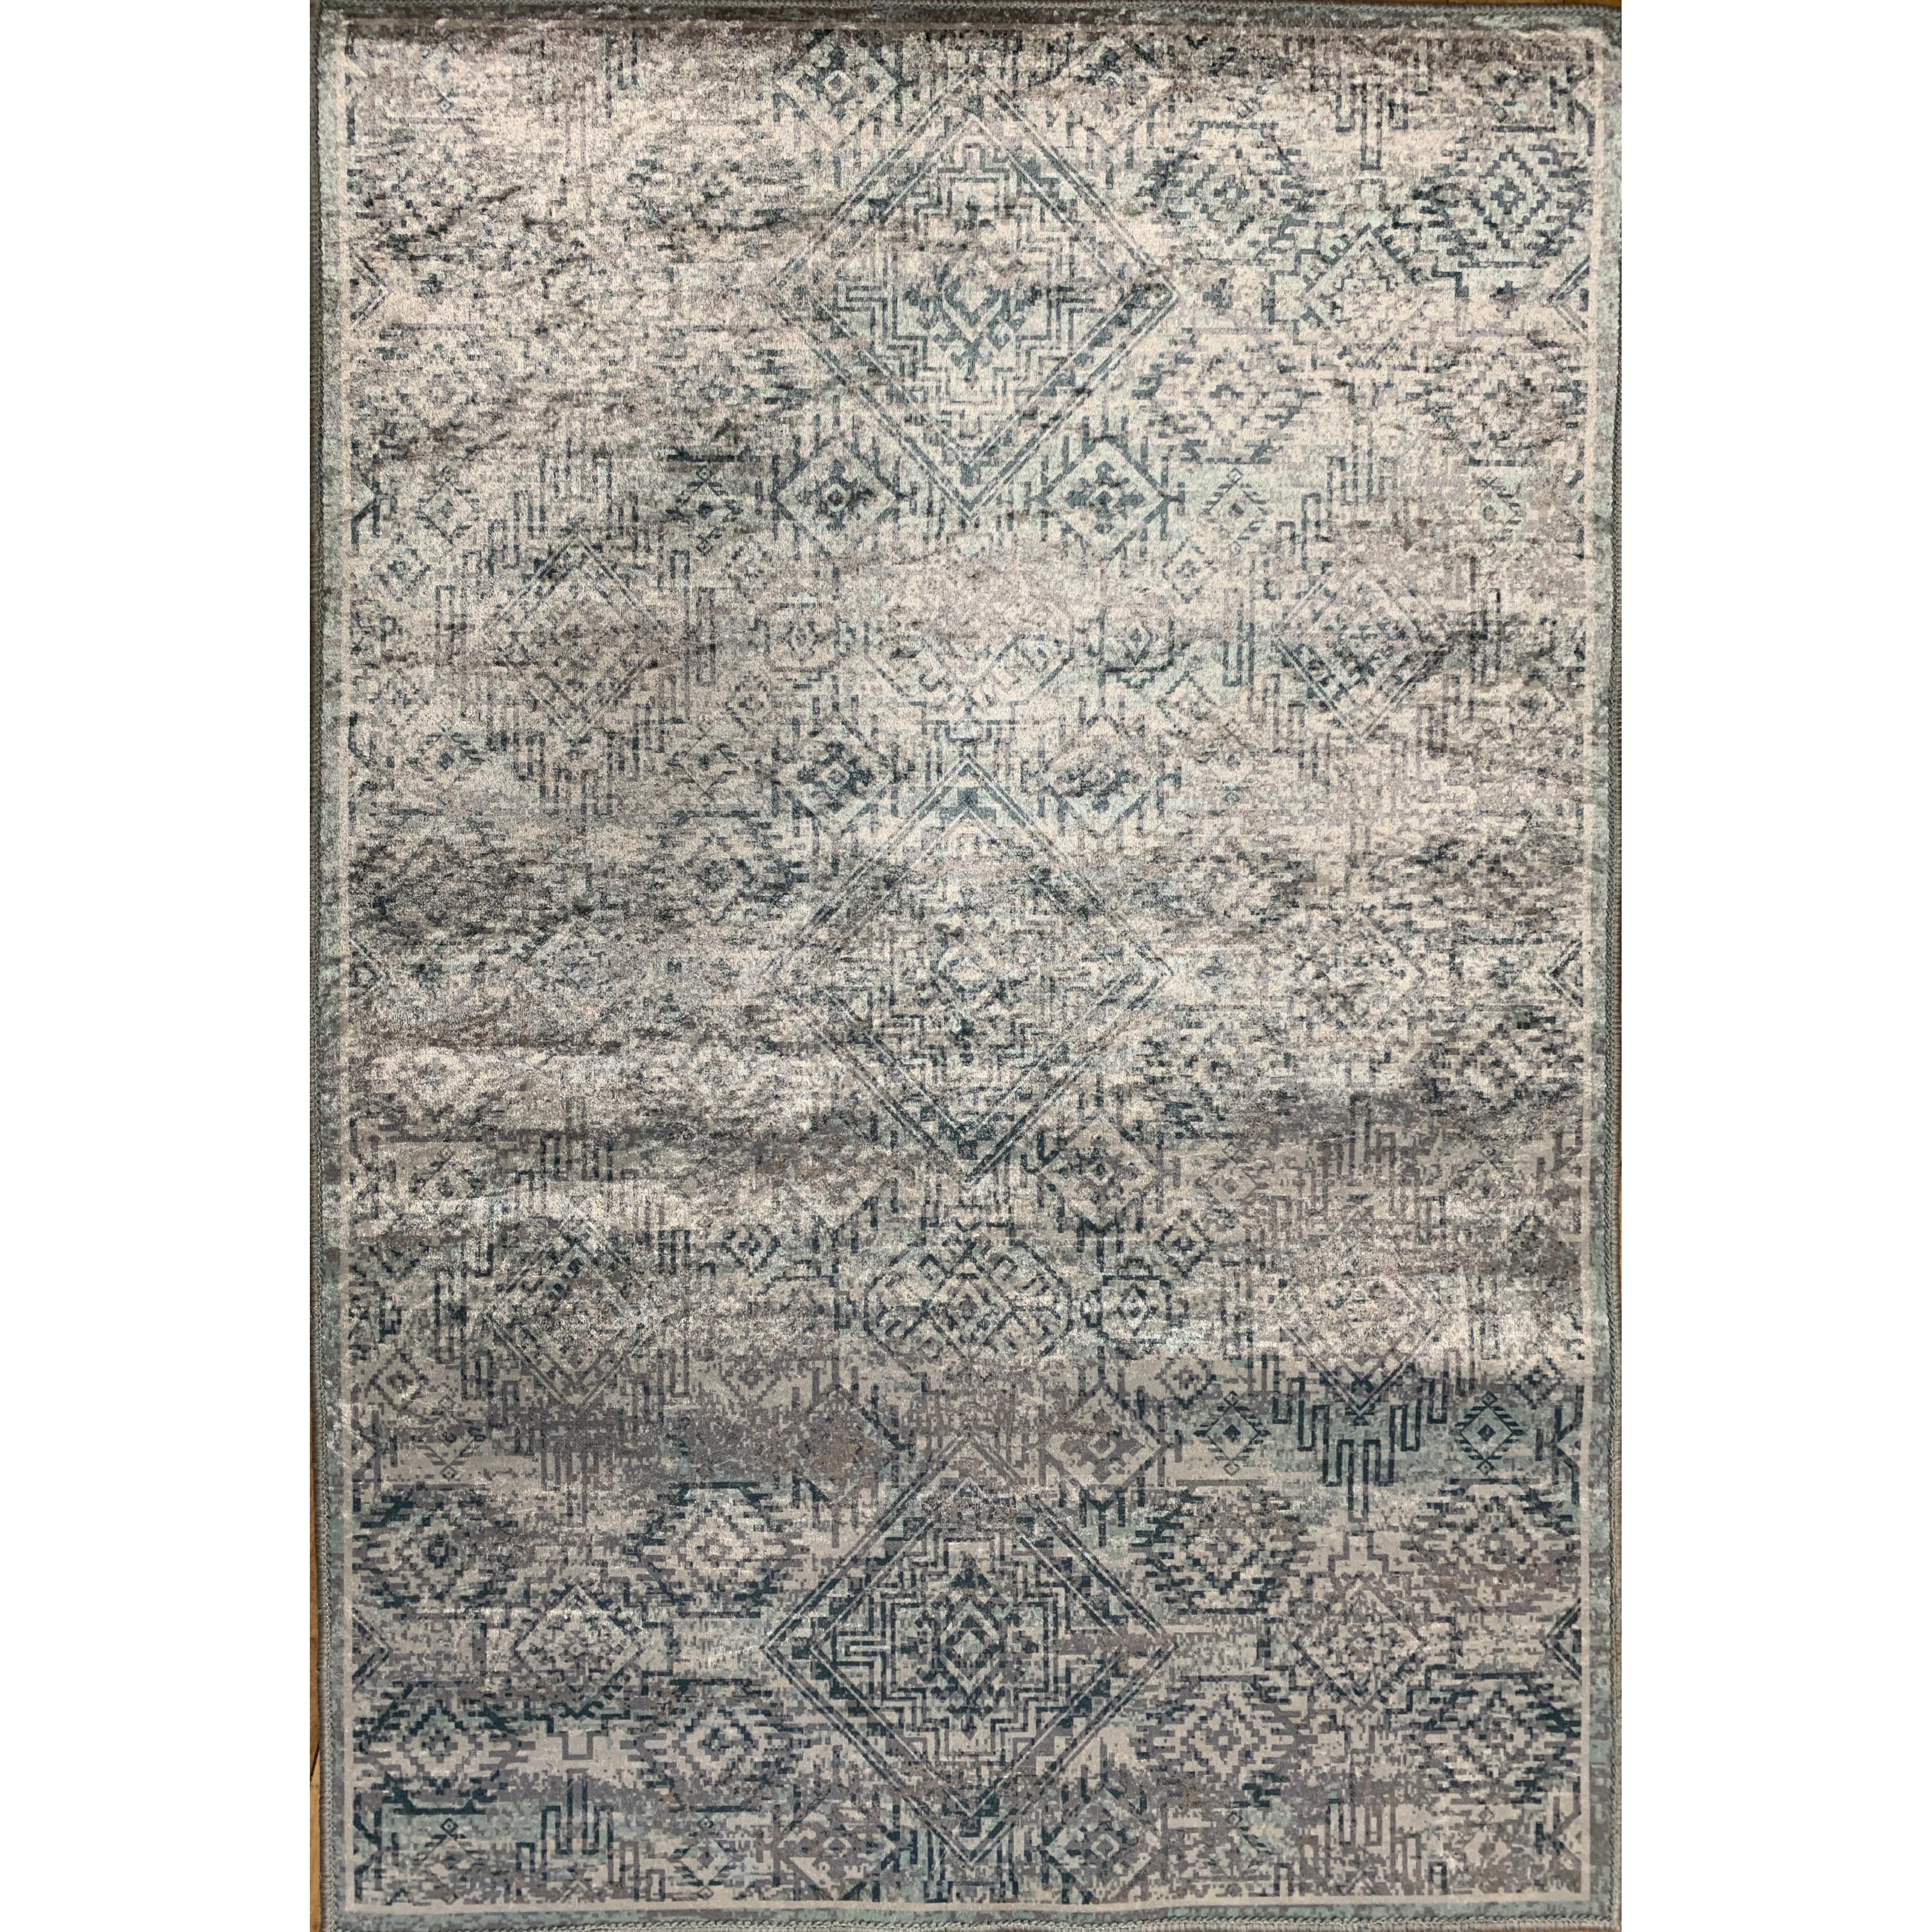 Emerald Collection Grey Rug 5ft x 7ft